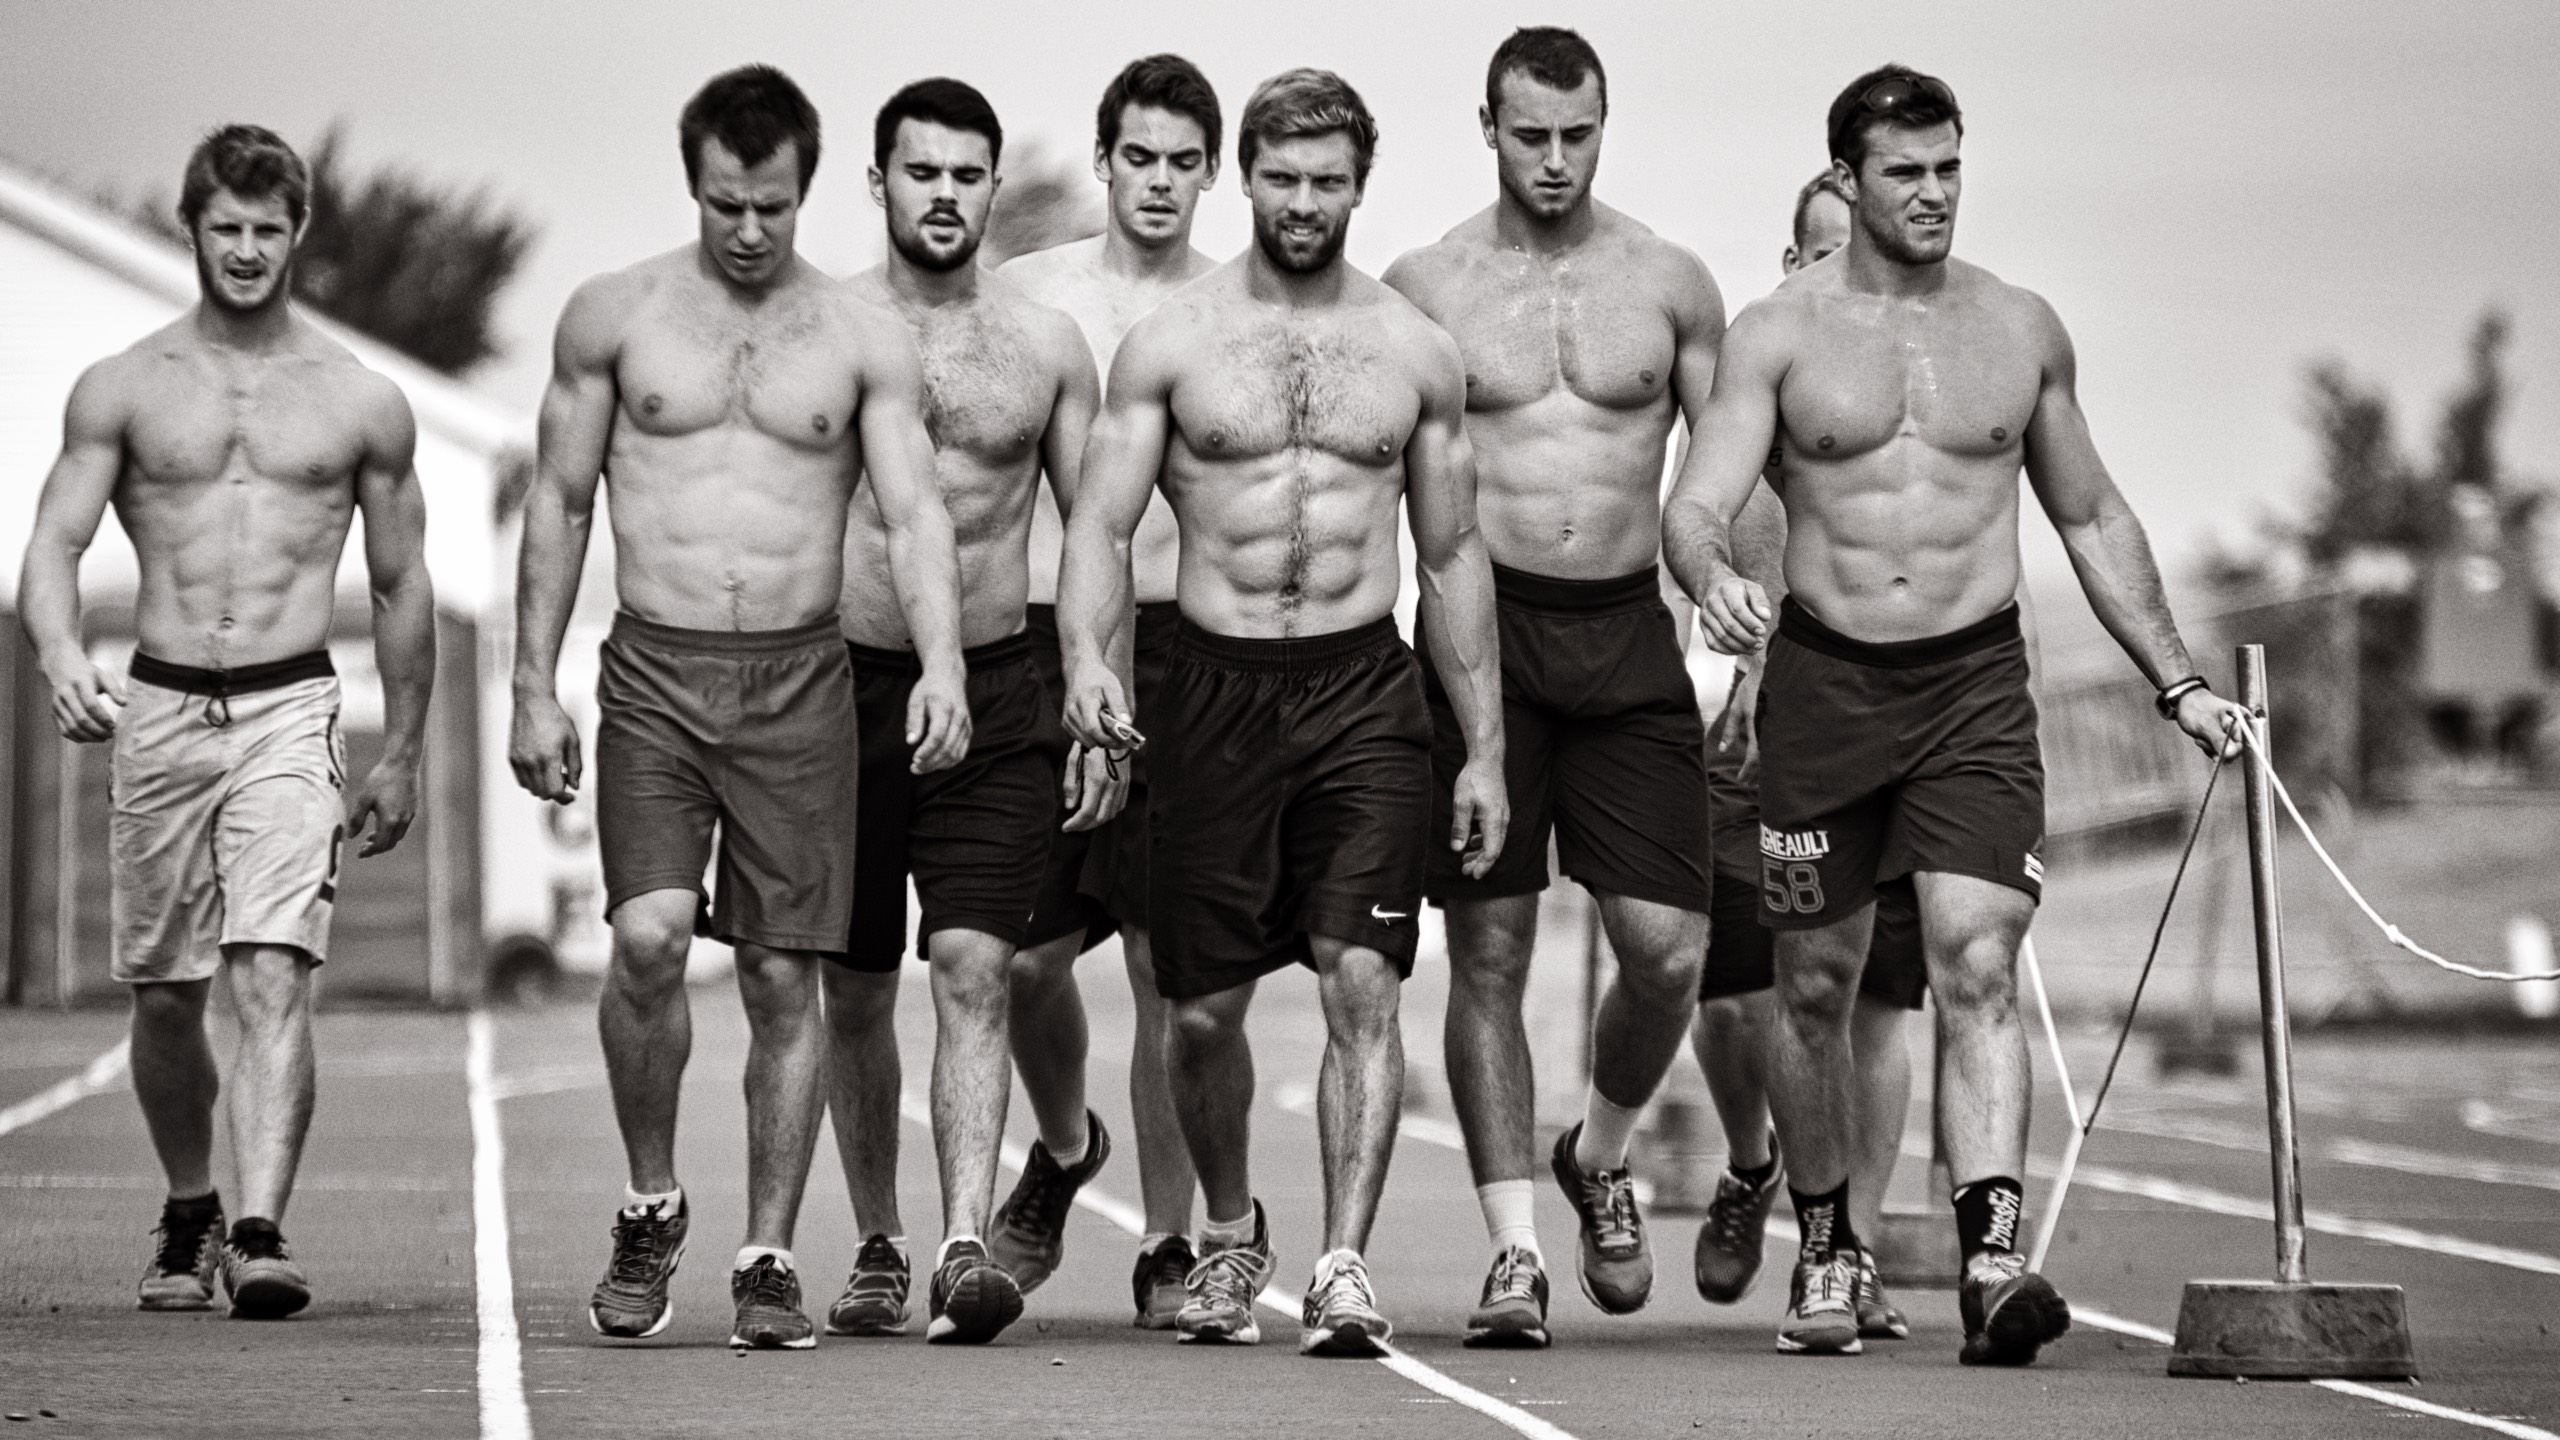 Male athletes